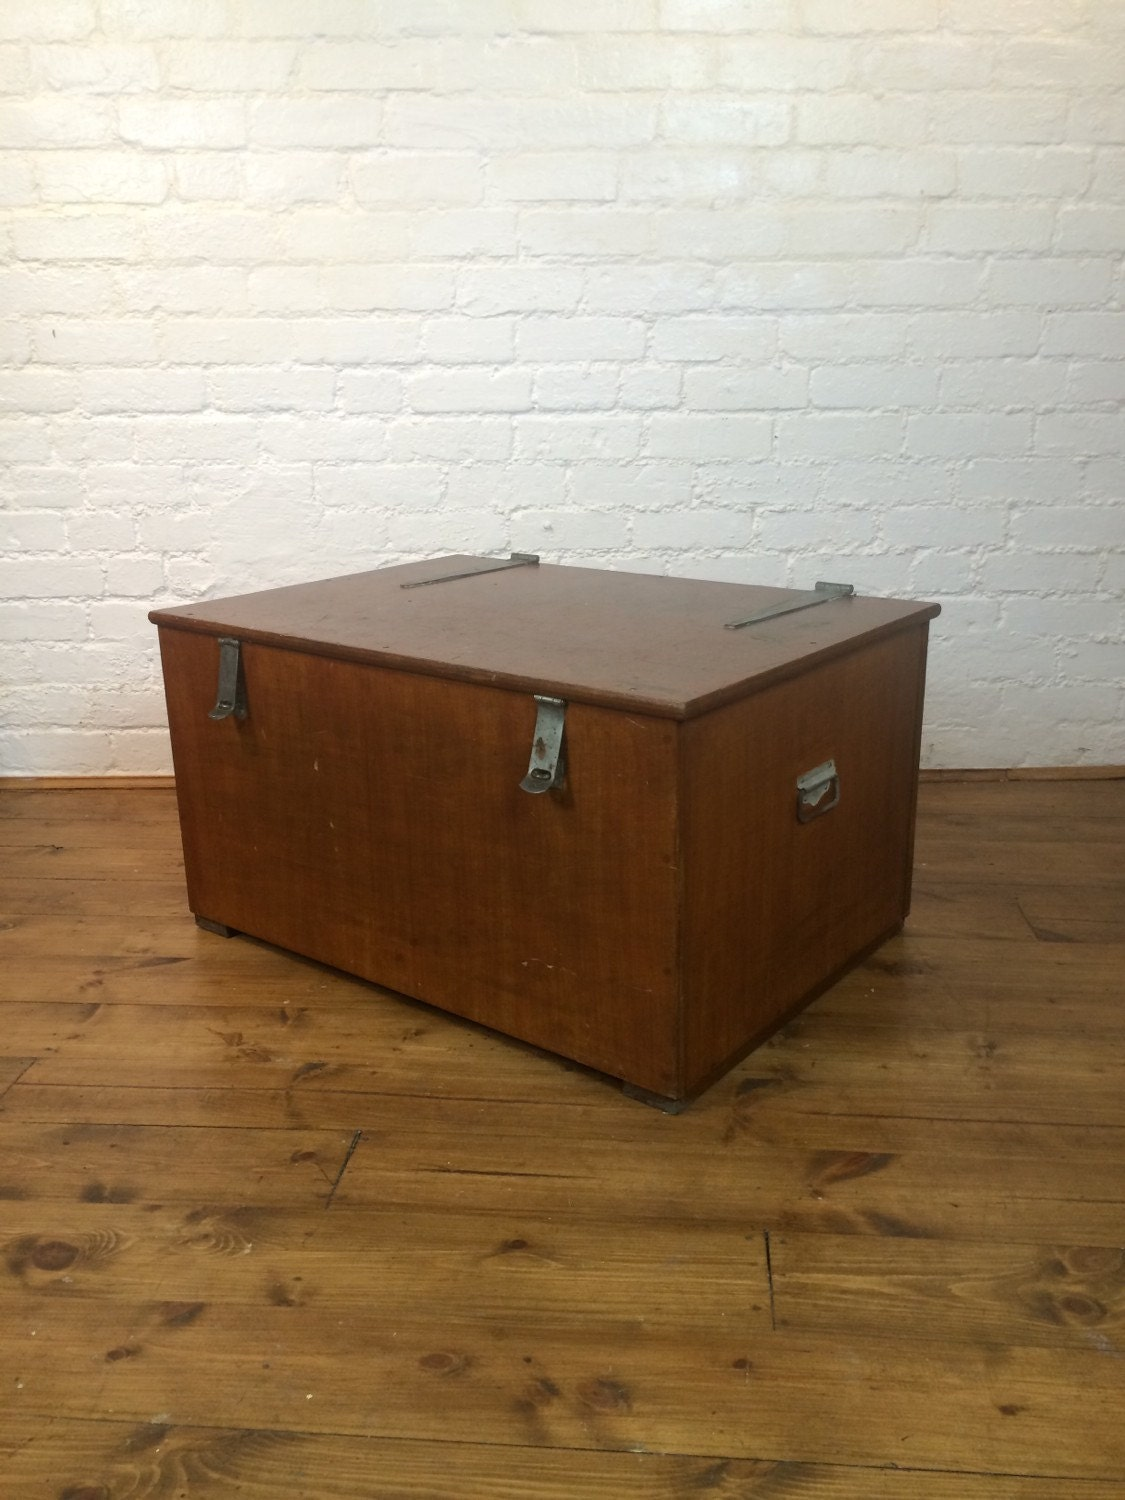 Vintage Rustic Wooden Trunk Coffee Table Blanket Box By Wearship